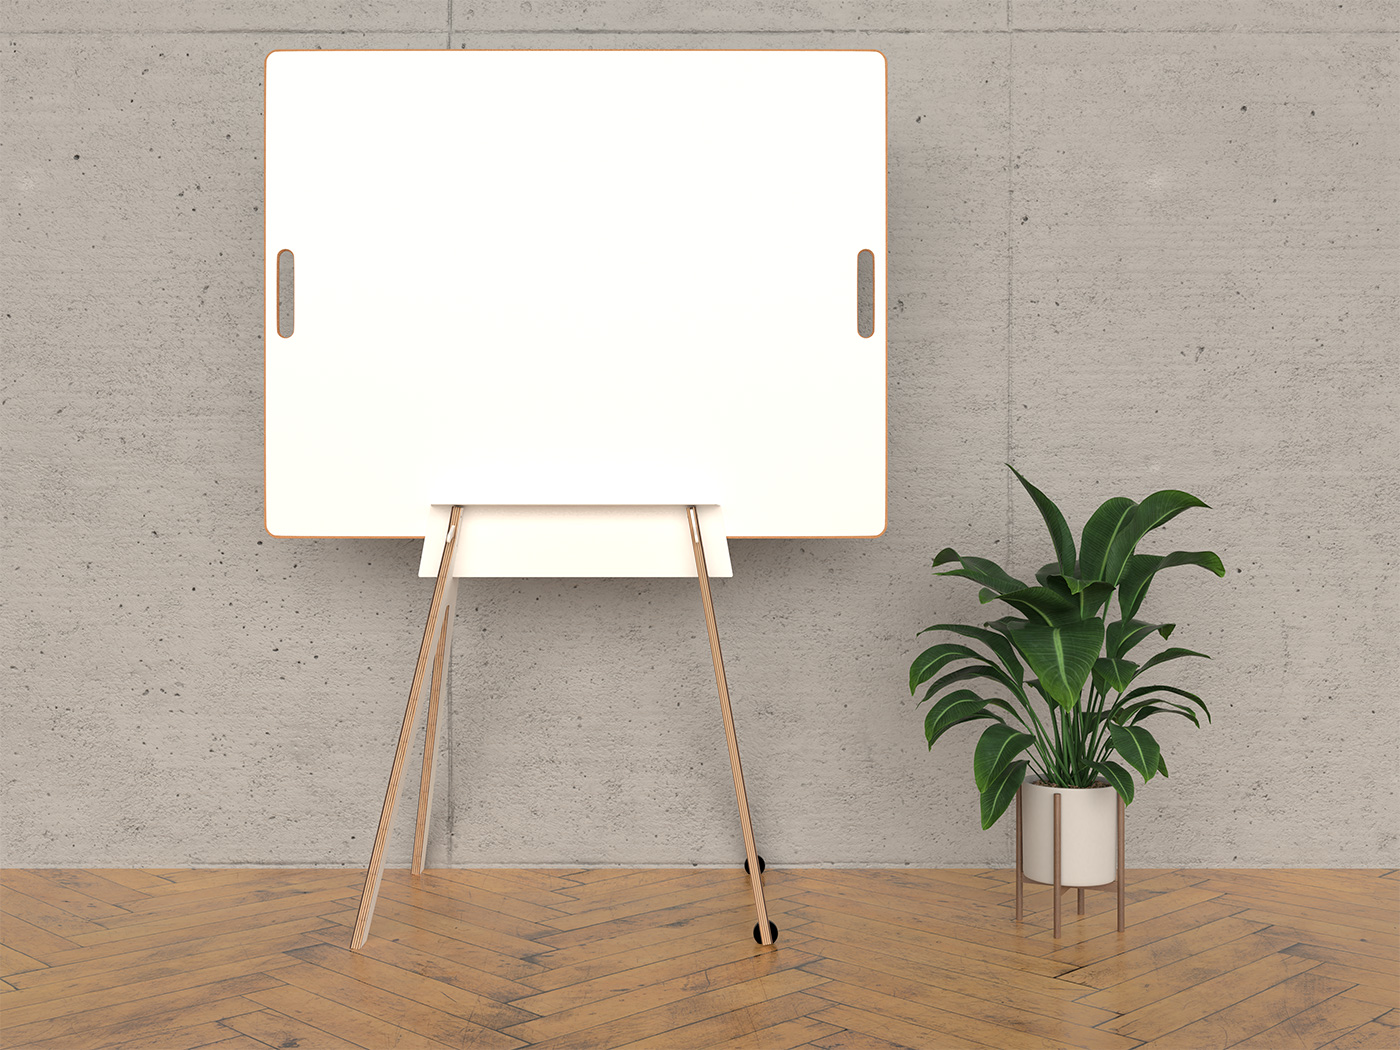 Design-Whiteboard in Gestell mit Pflanze